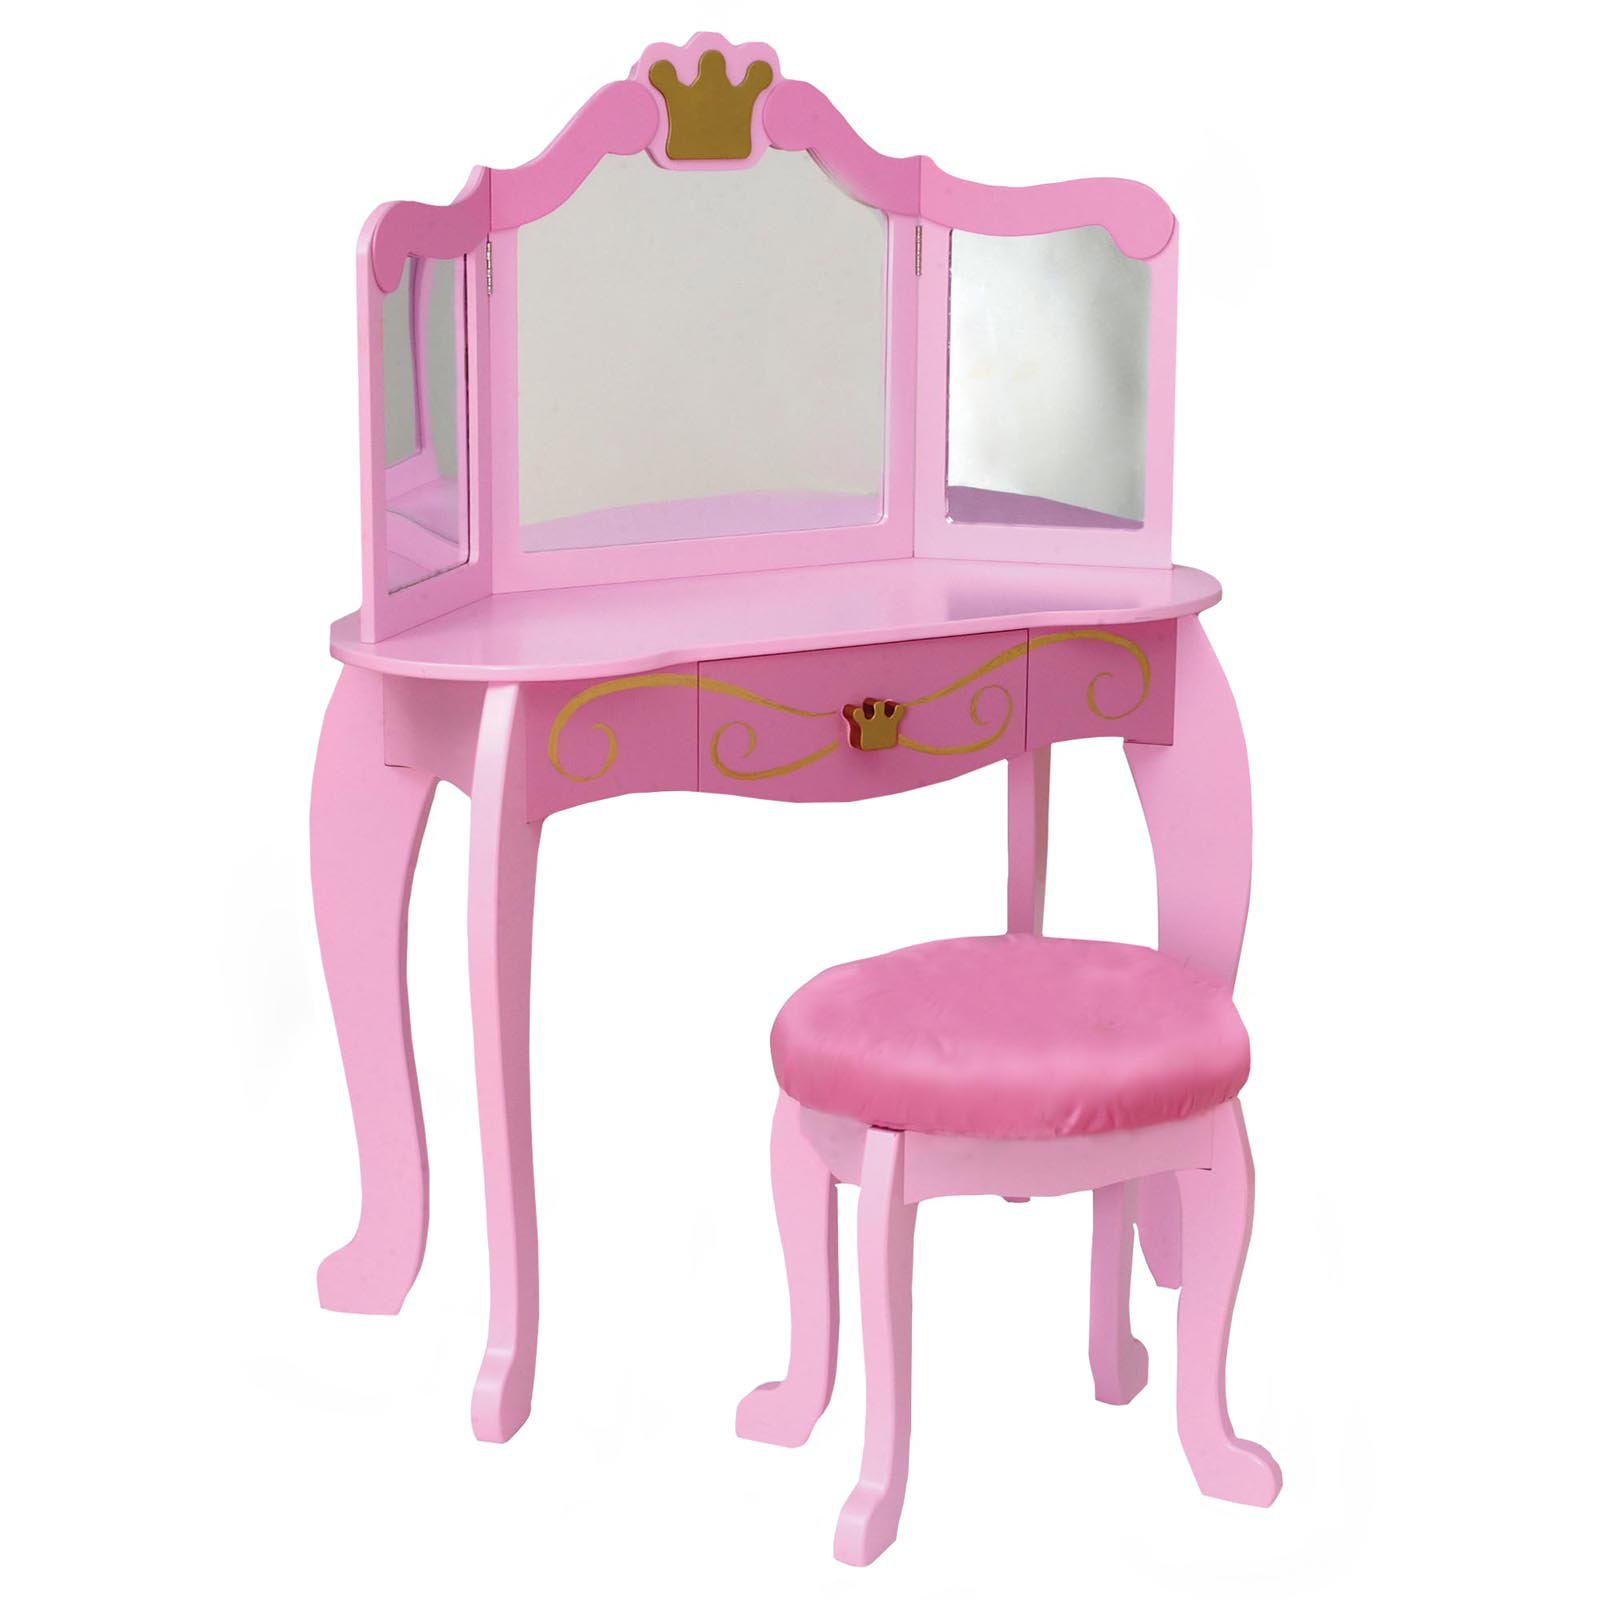 lights desks unfinished your table makeup ikea within decor magnificent bedroom set with residence vanity for vanities